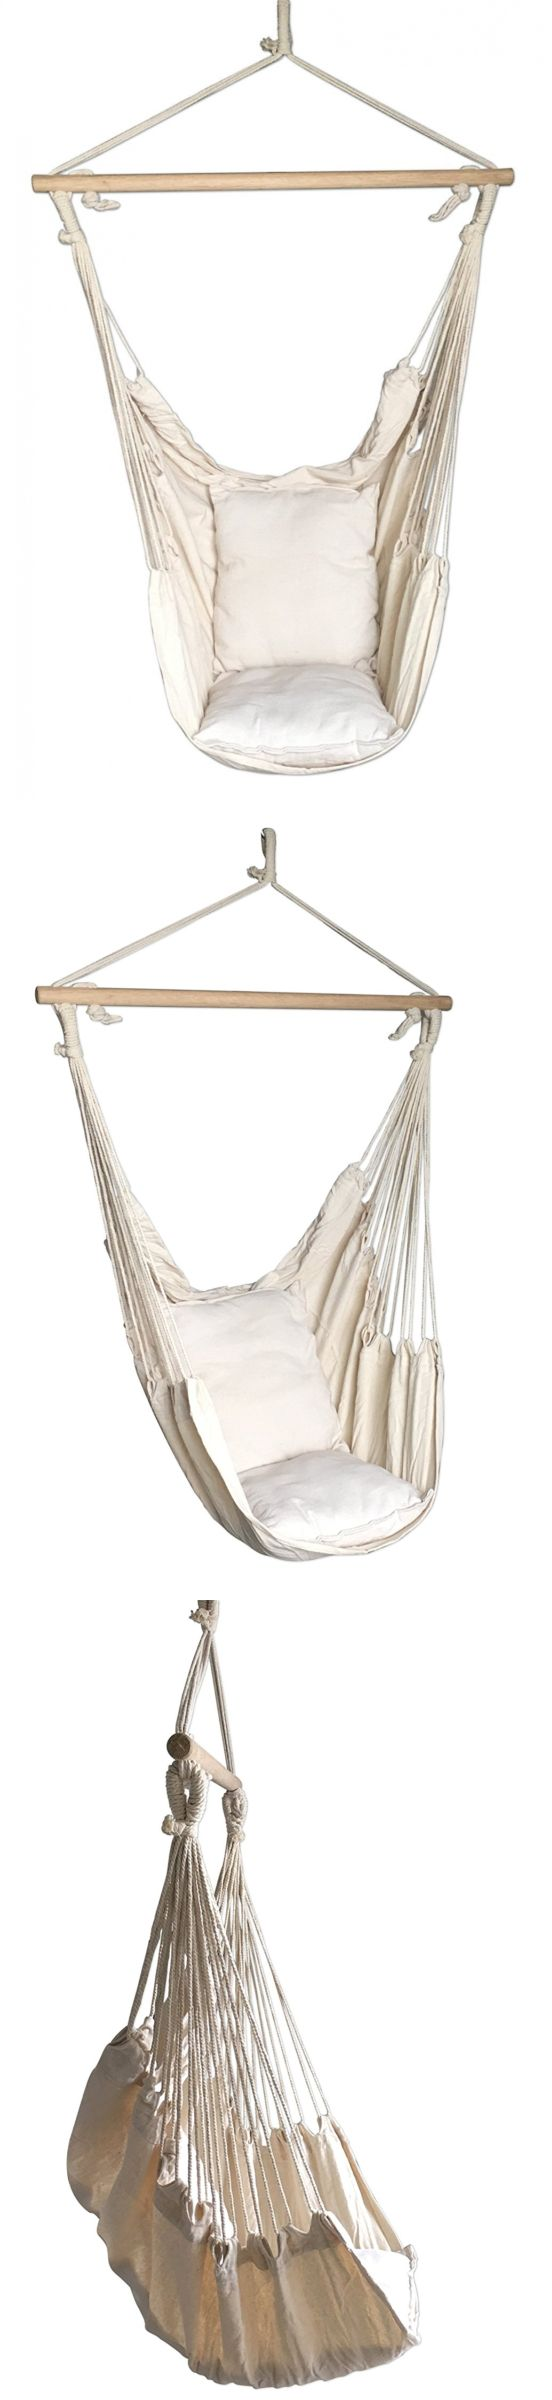 Best 25 indoor hammock chair ideas only on pinterest for Indoor hanging rope chair